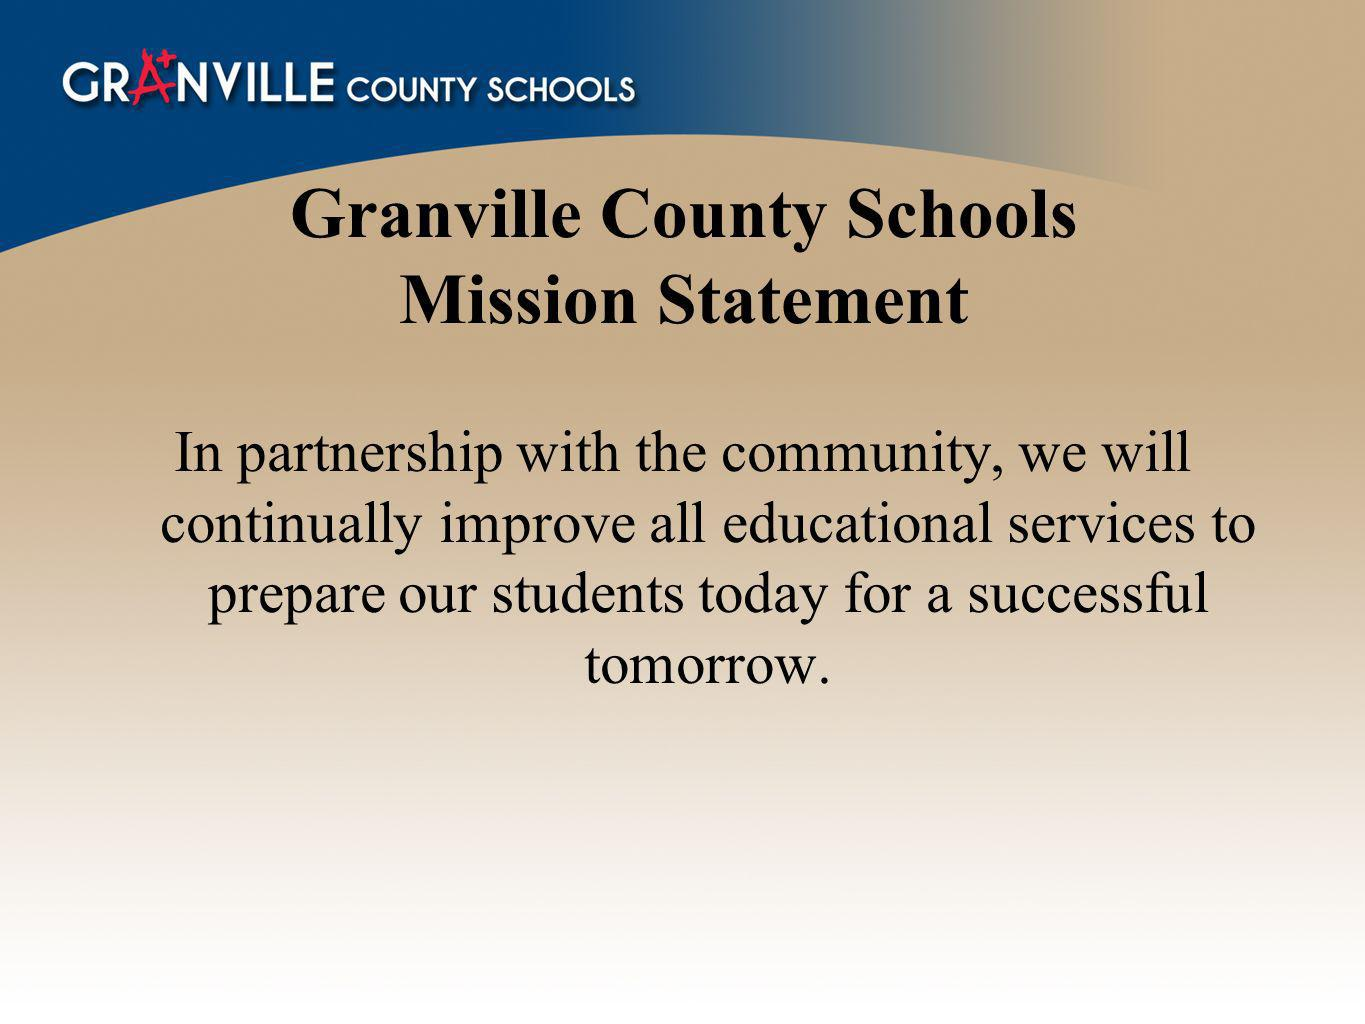 Granville County Schools Mission Statement In partnership with the community, we will continually improve all educational services to prepare our students today for a successful tomorrow.